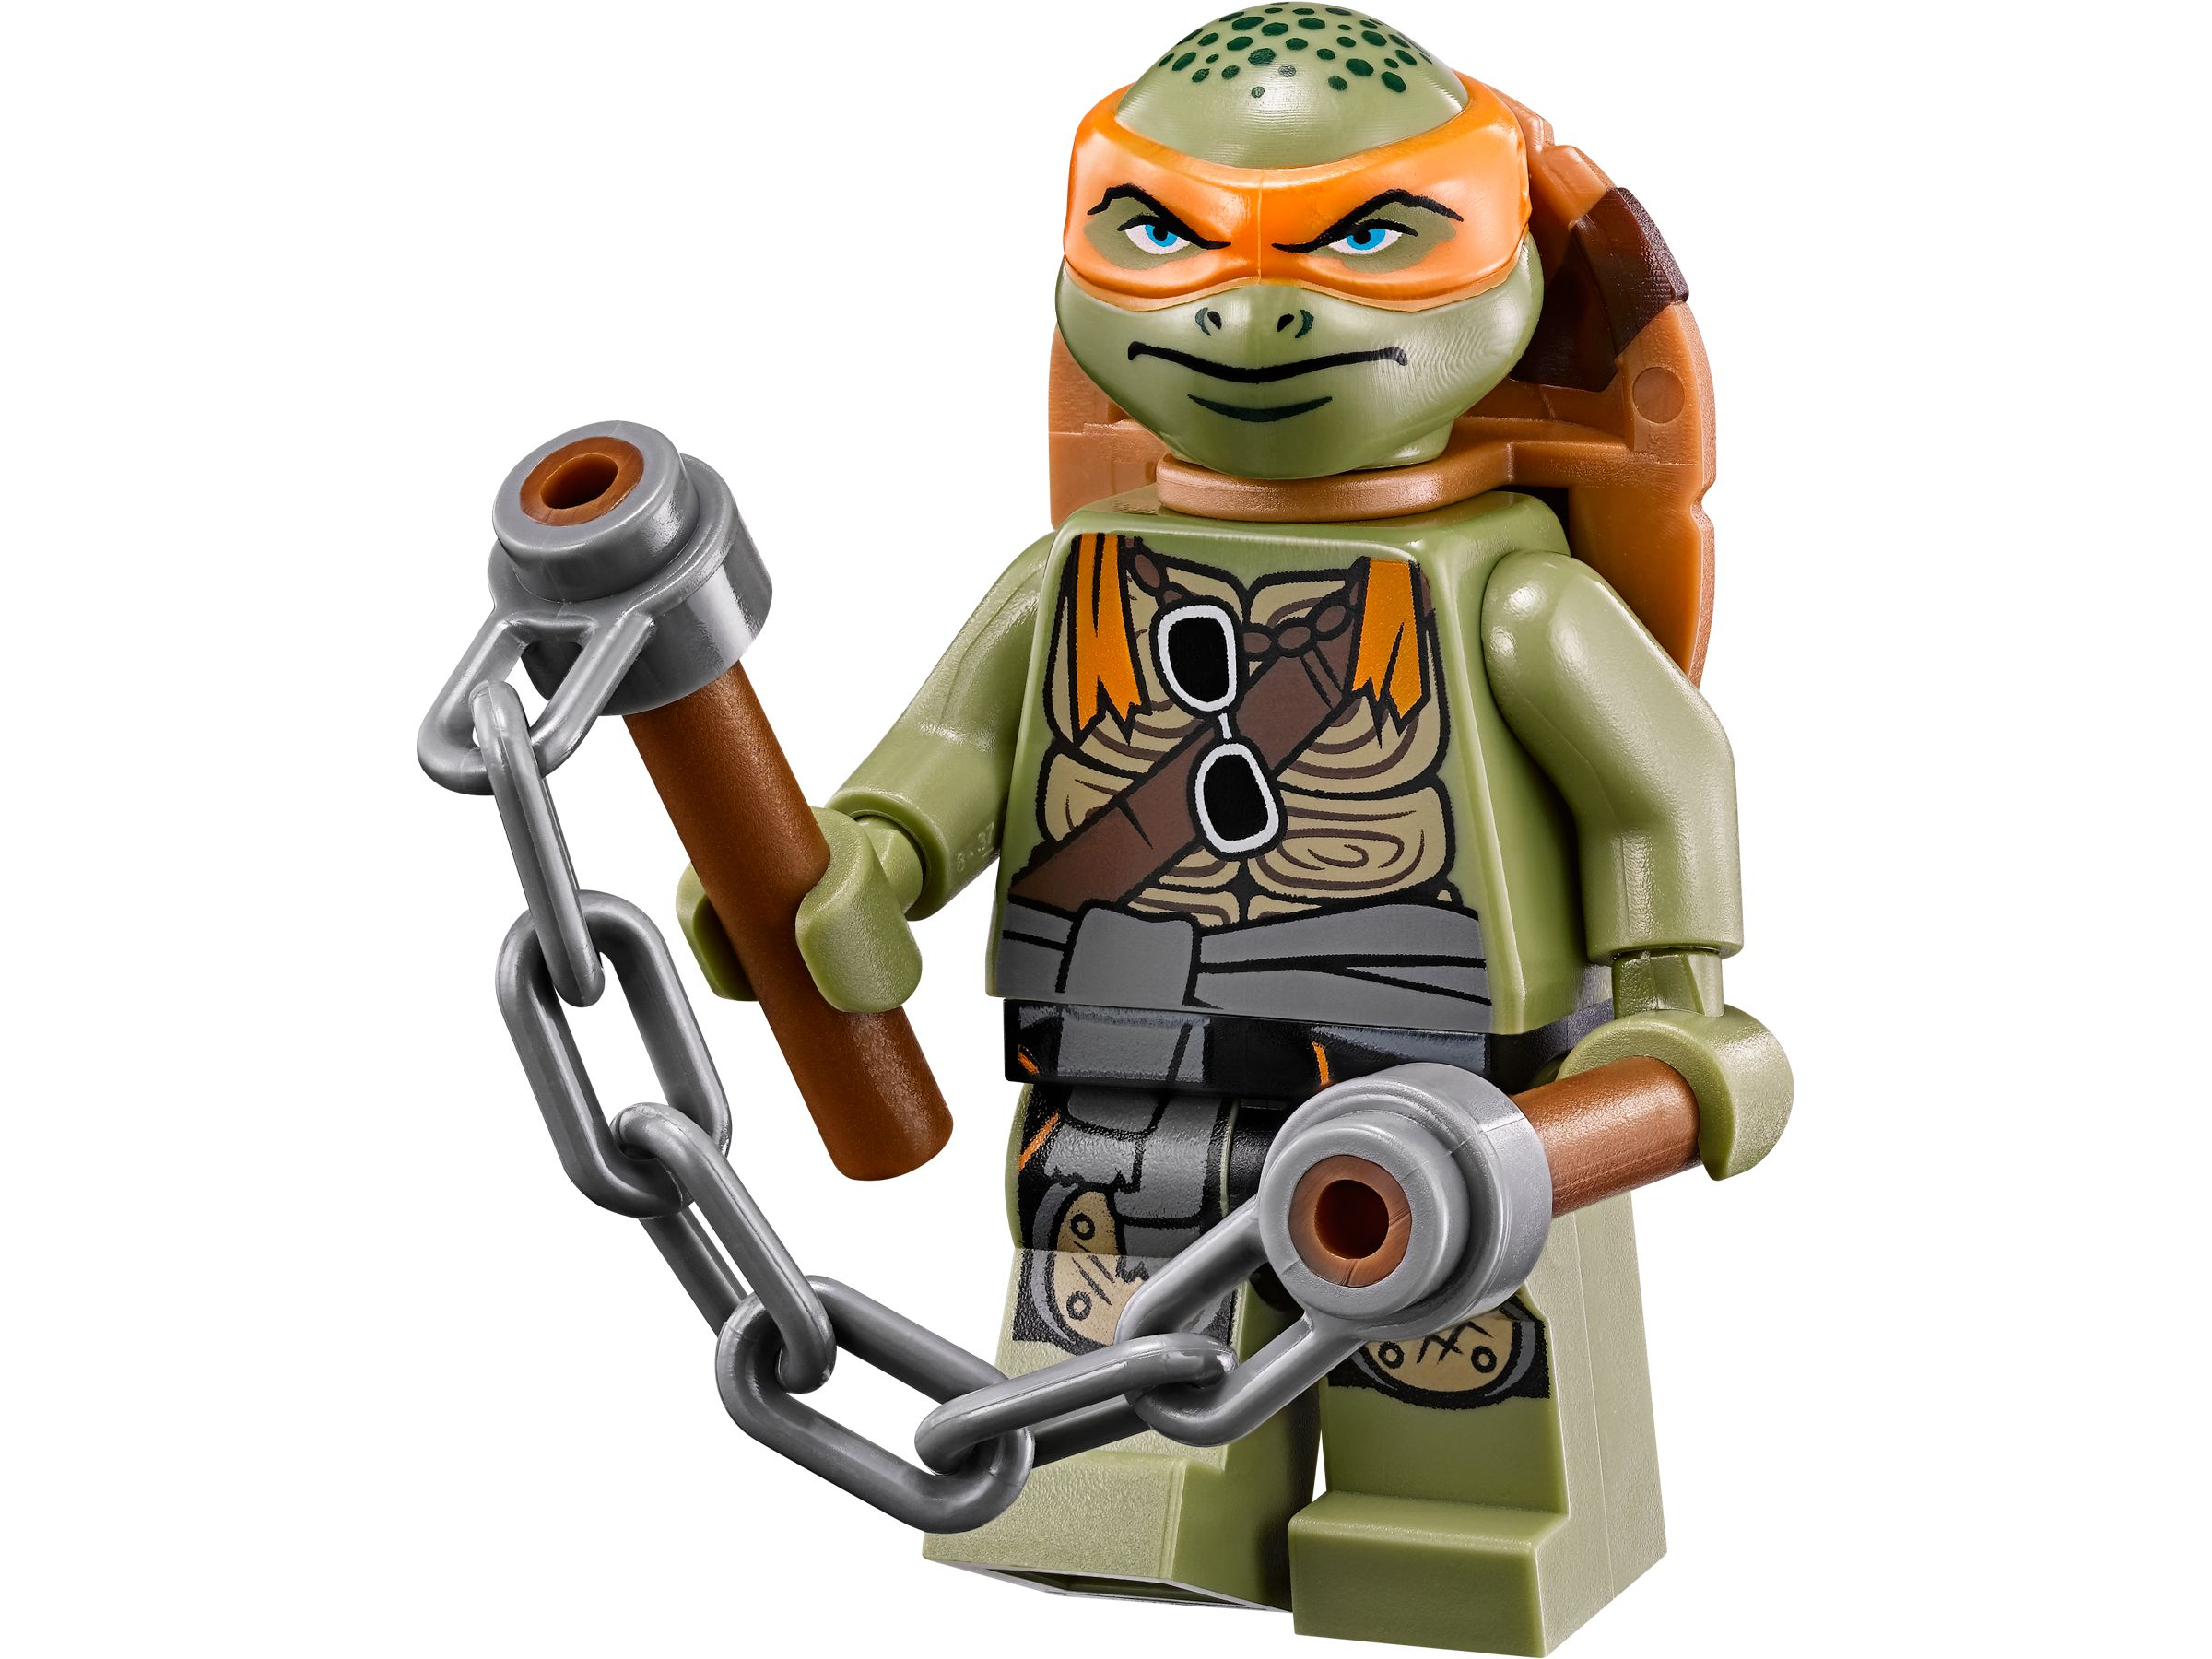 LEGO Teenage Mutant Ninja Turtles 79115 Turtle Van LEGO_79115_alt8.jpg